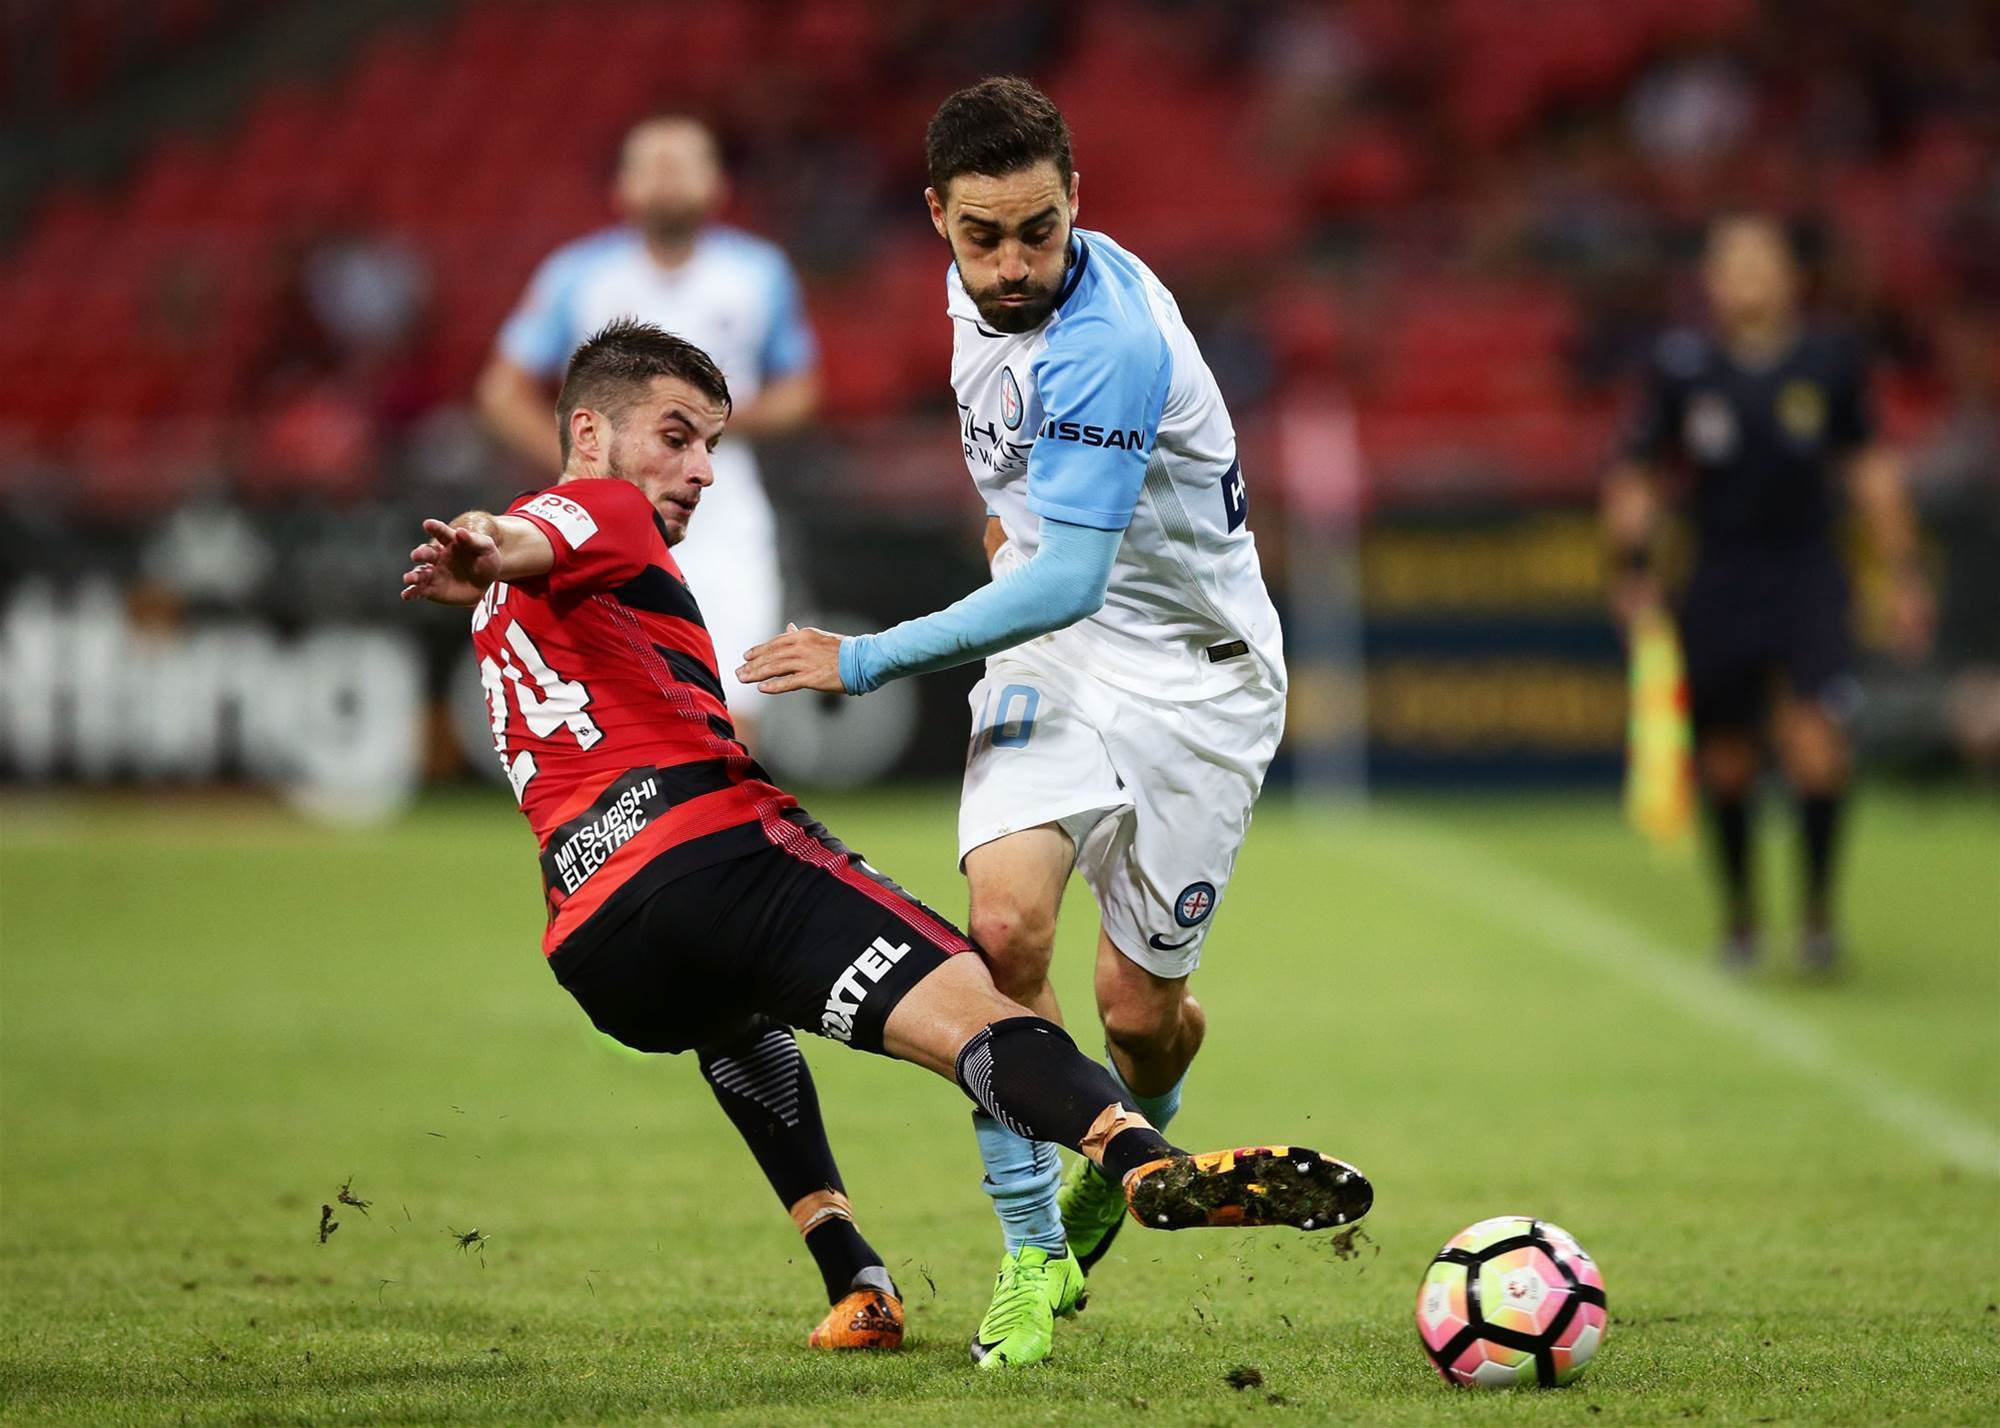 Wanderers v City pic special